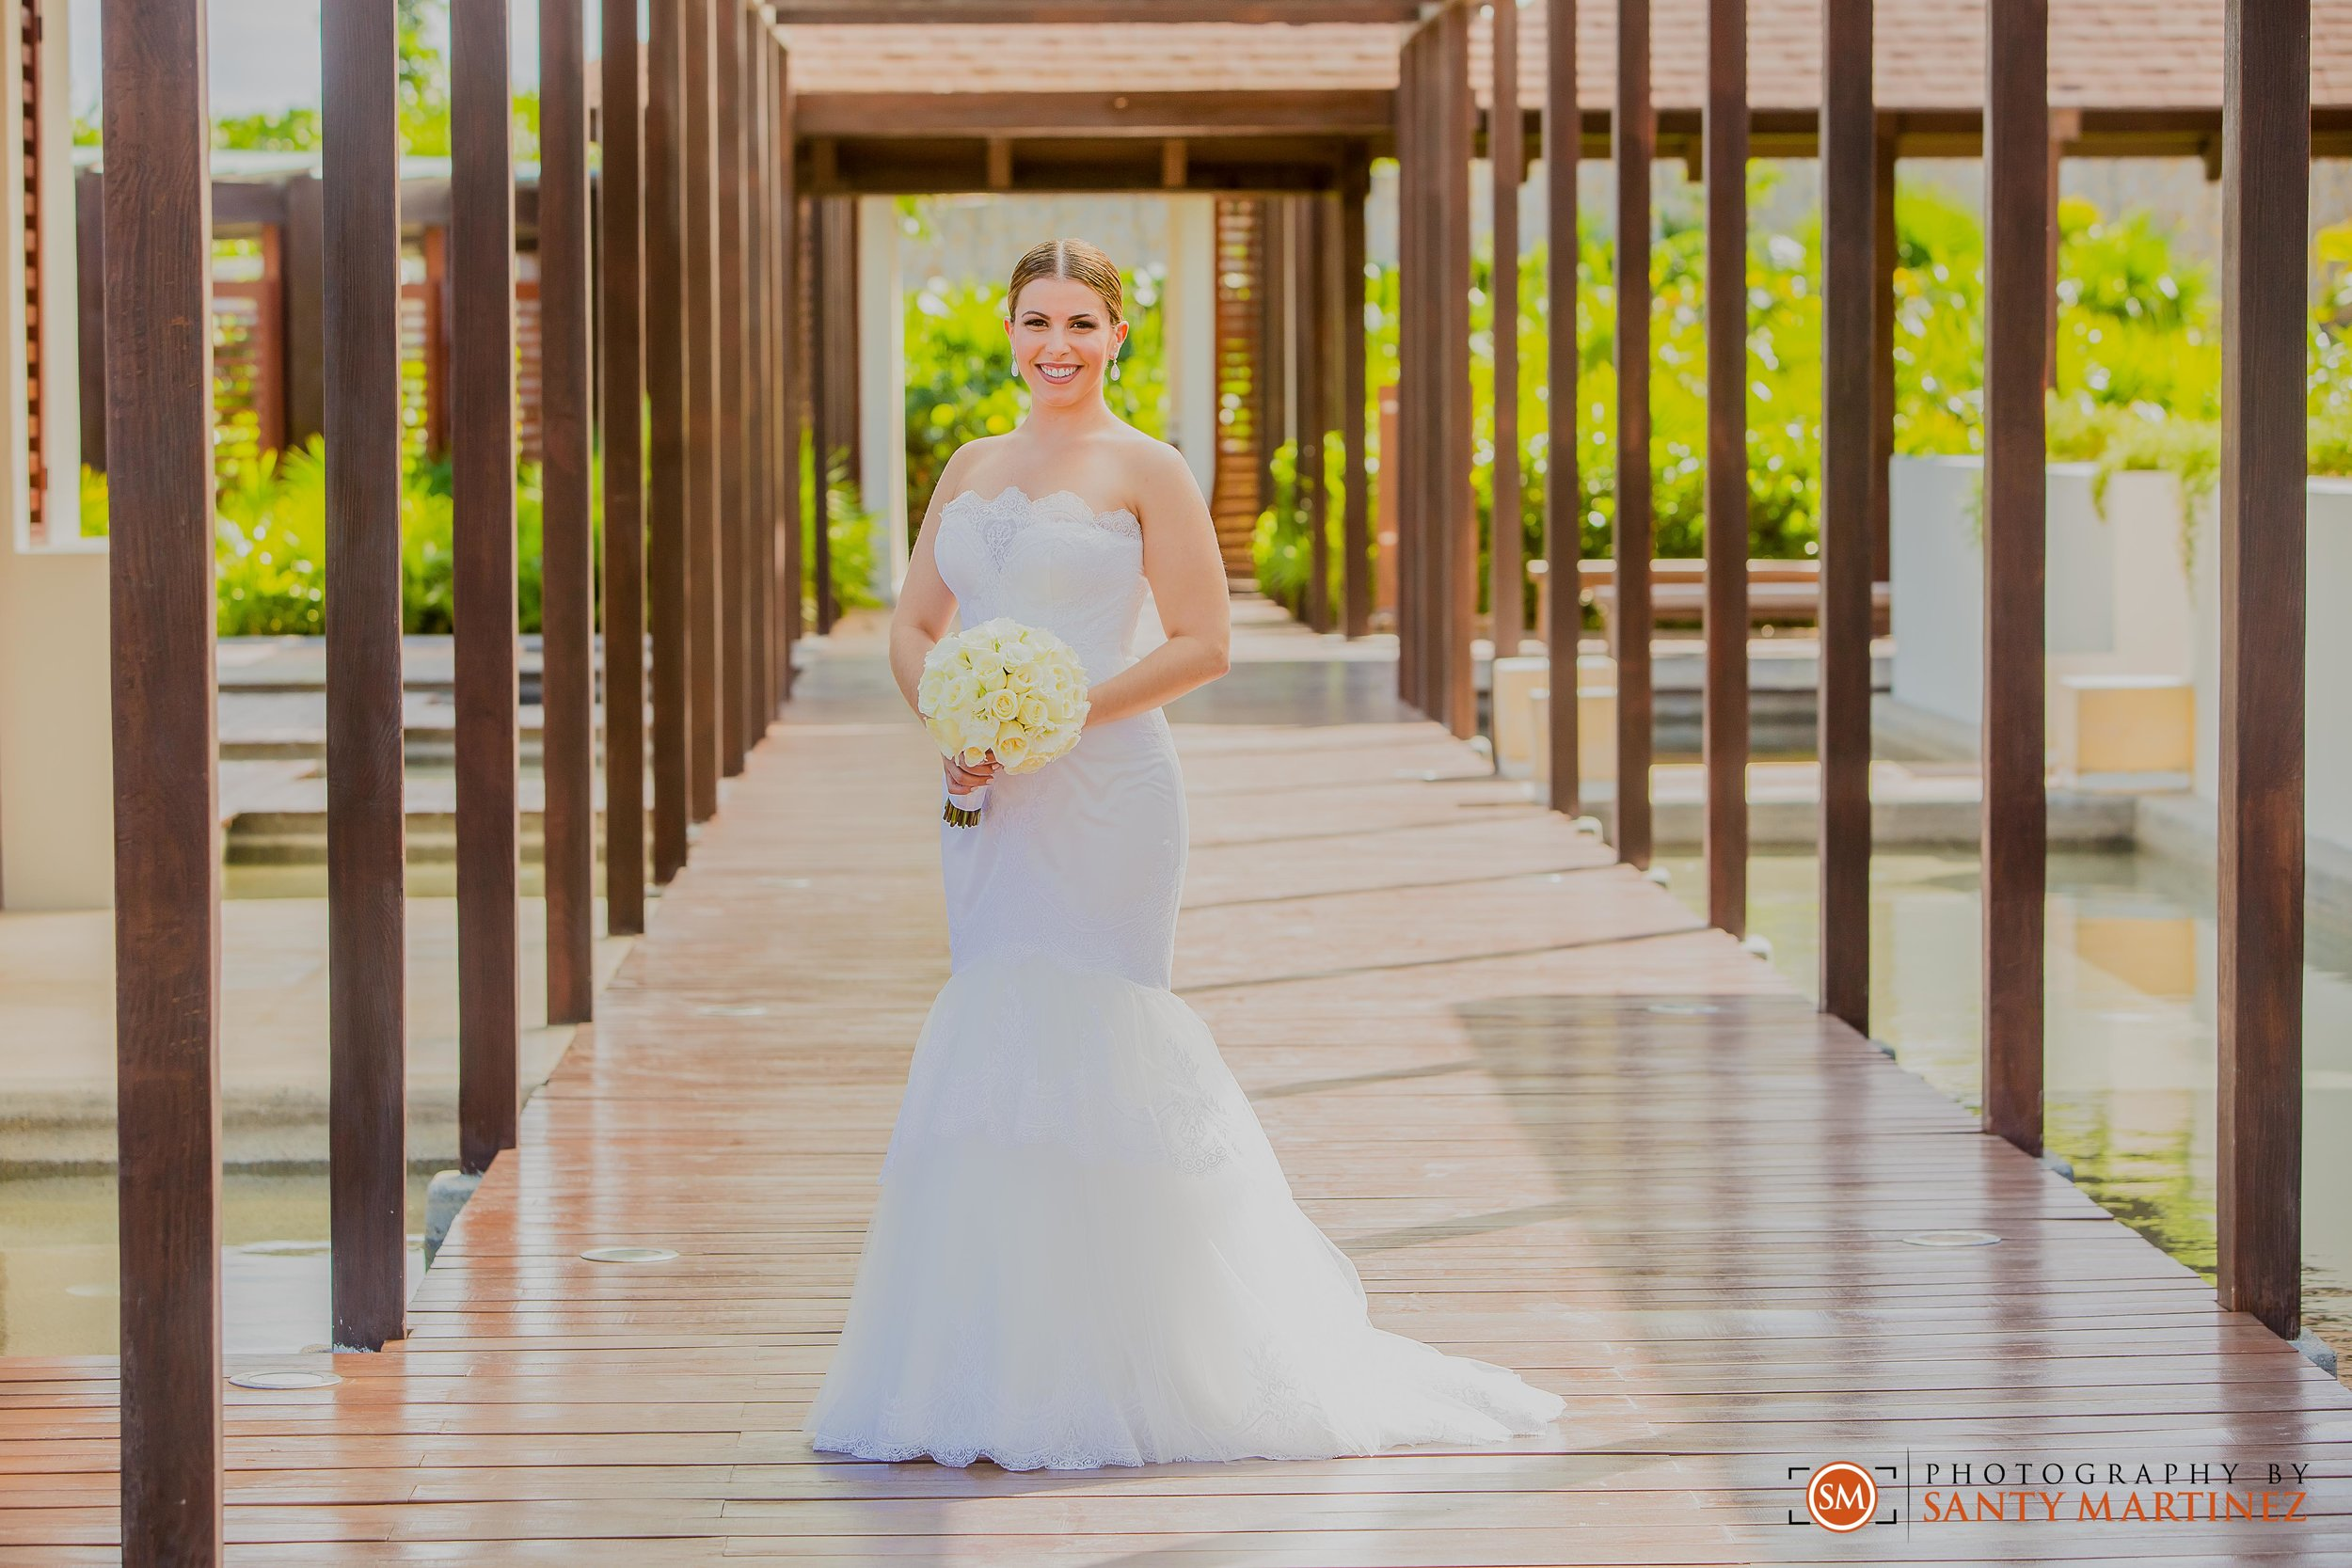 Secrets Playa Mujeres Weddings - Photography by Santy Martinez--7.jpg